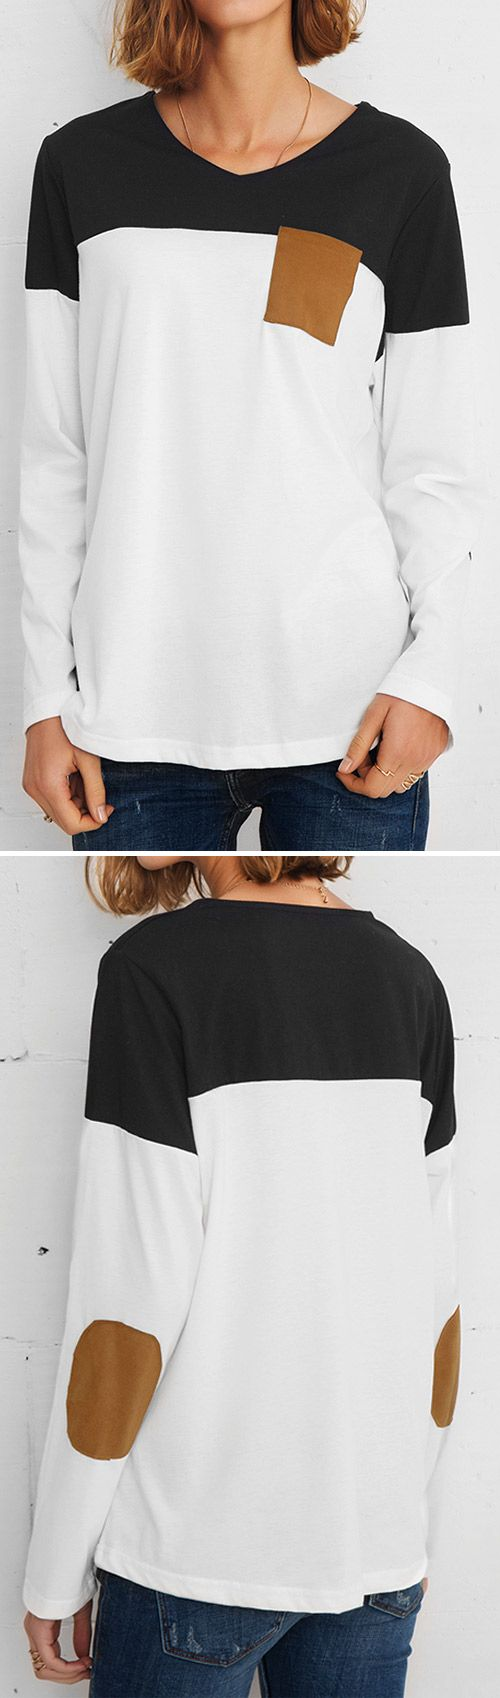 $23.99 Only with free shipping&easy return! This contrast color top gonna get you back in check! Must-have suede top-get it with more holiday surprises at Cupshe.com